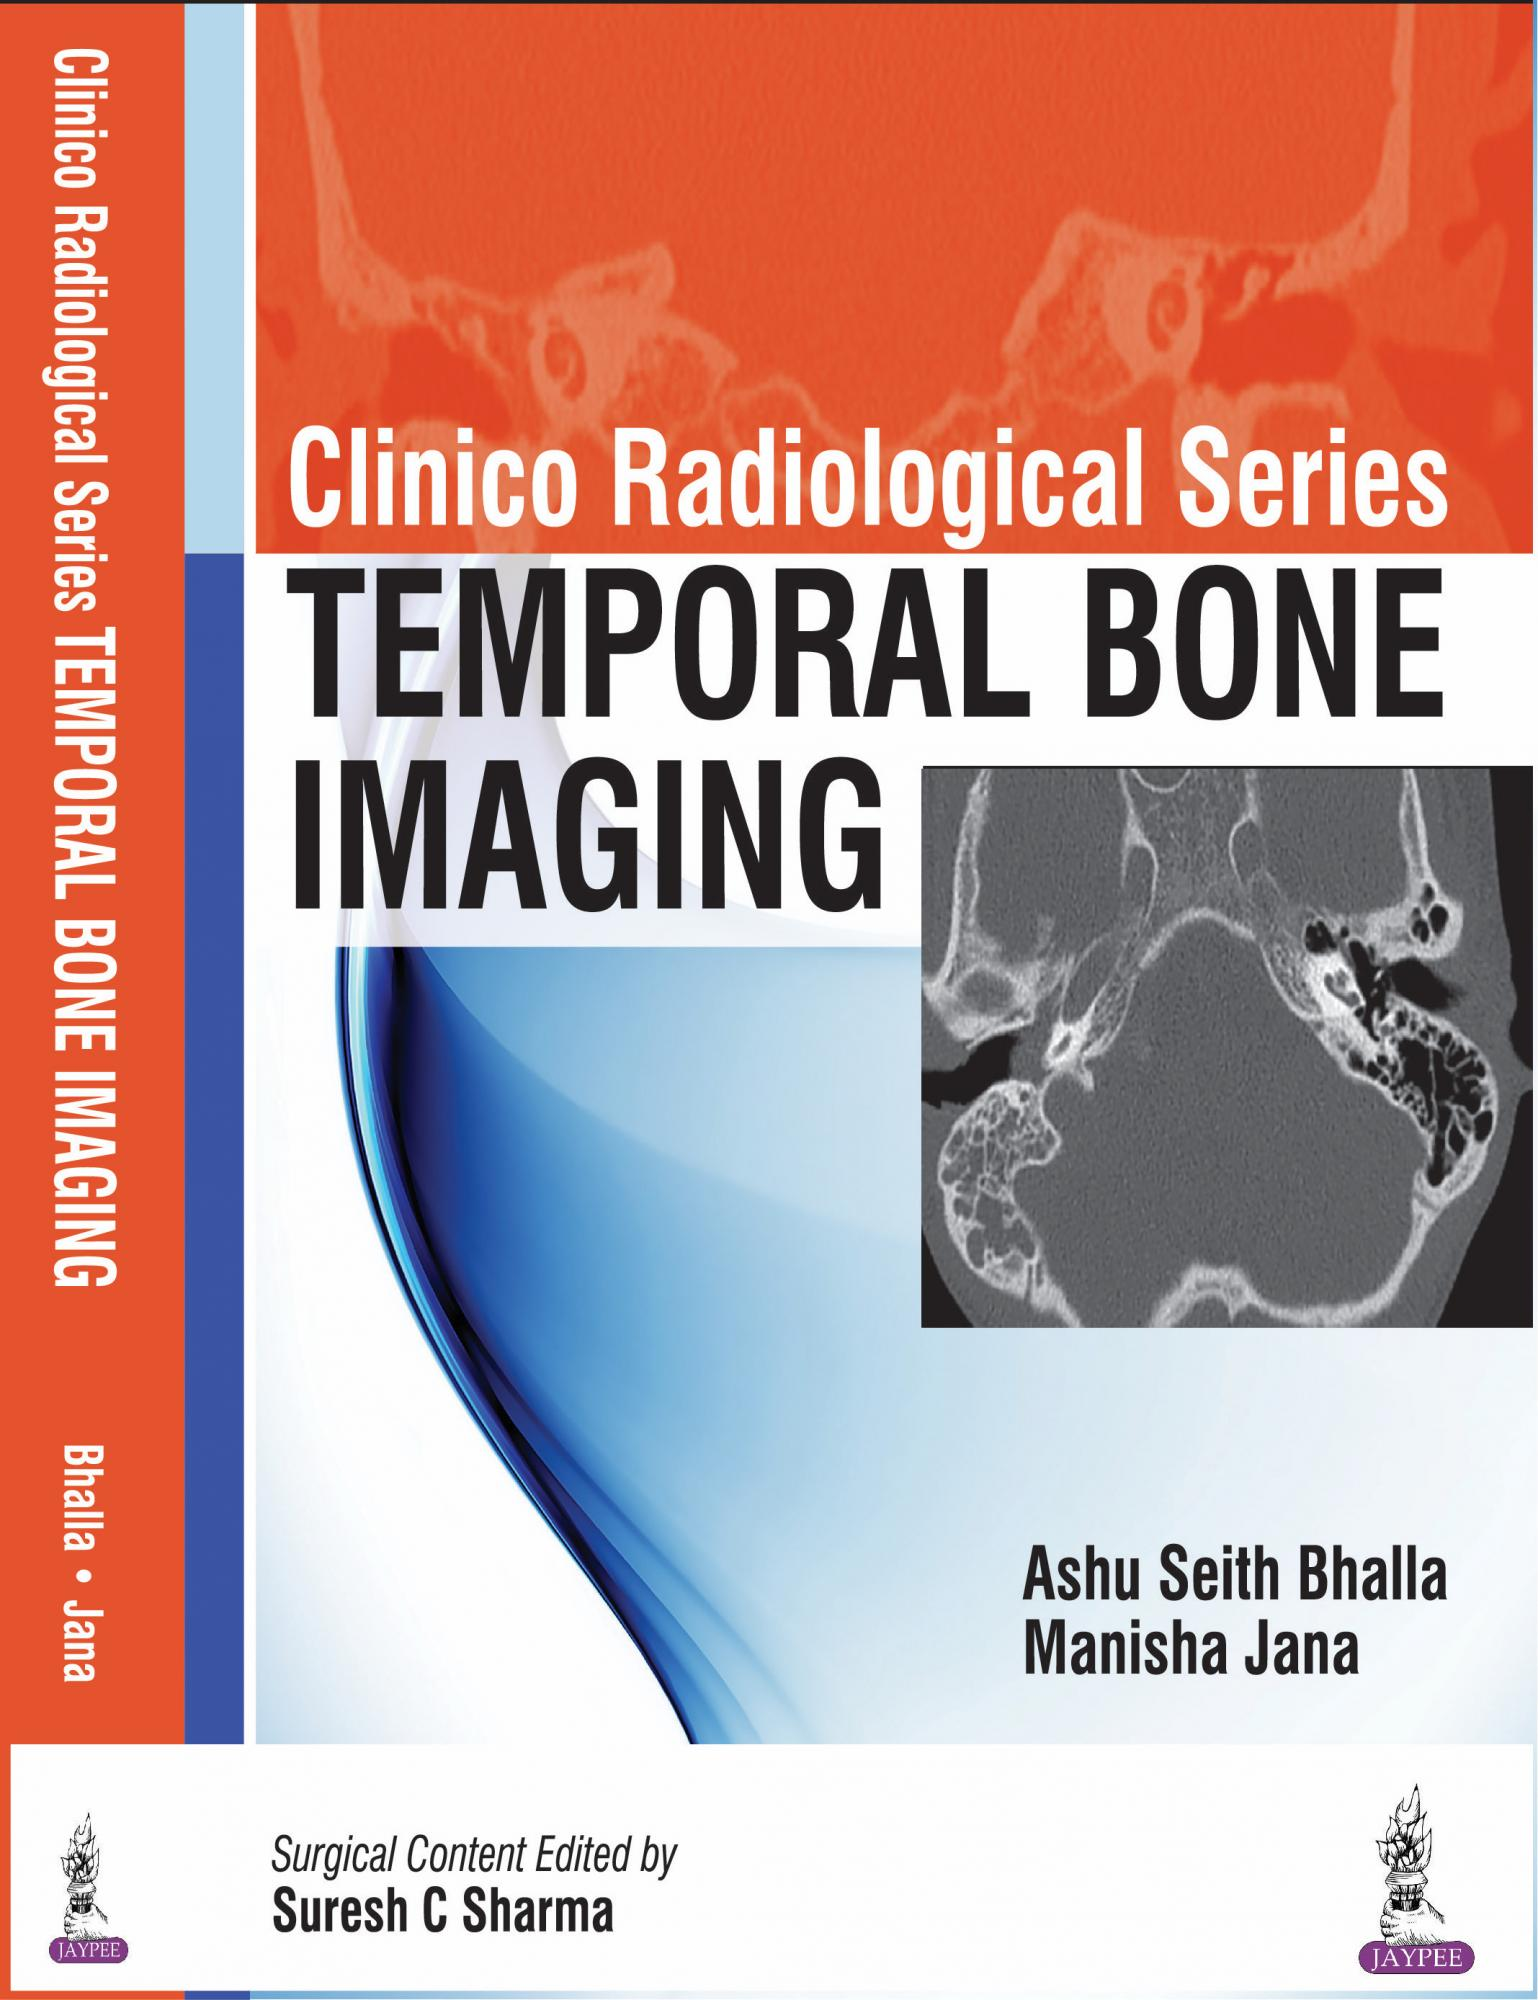 Clinico Radiological Series: Temporal Bone Imaging